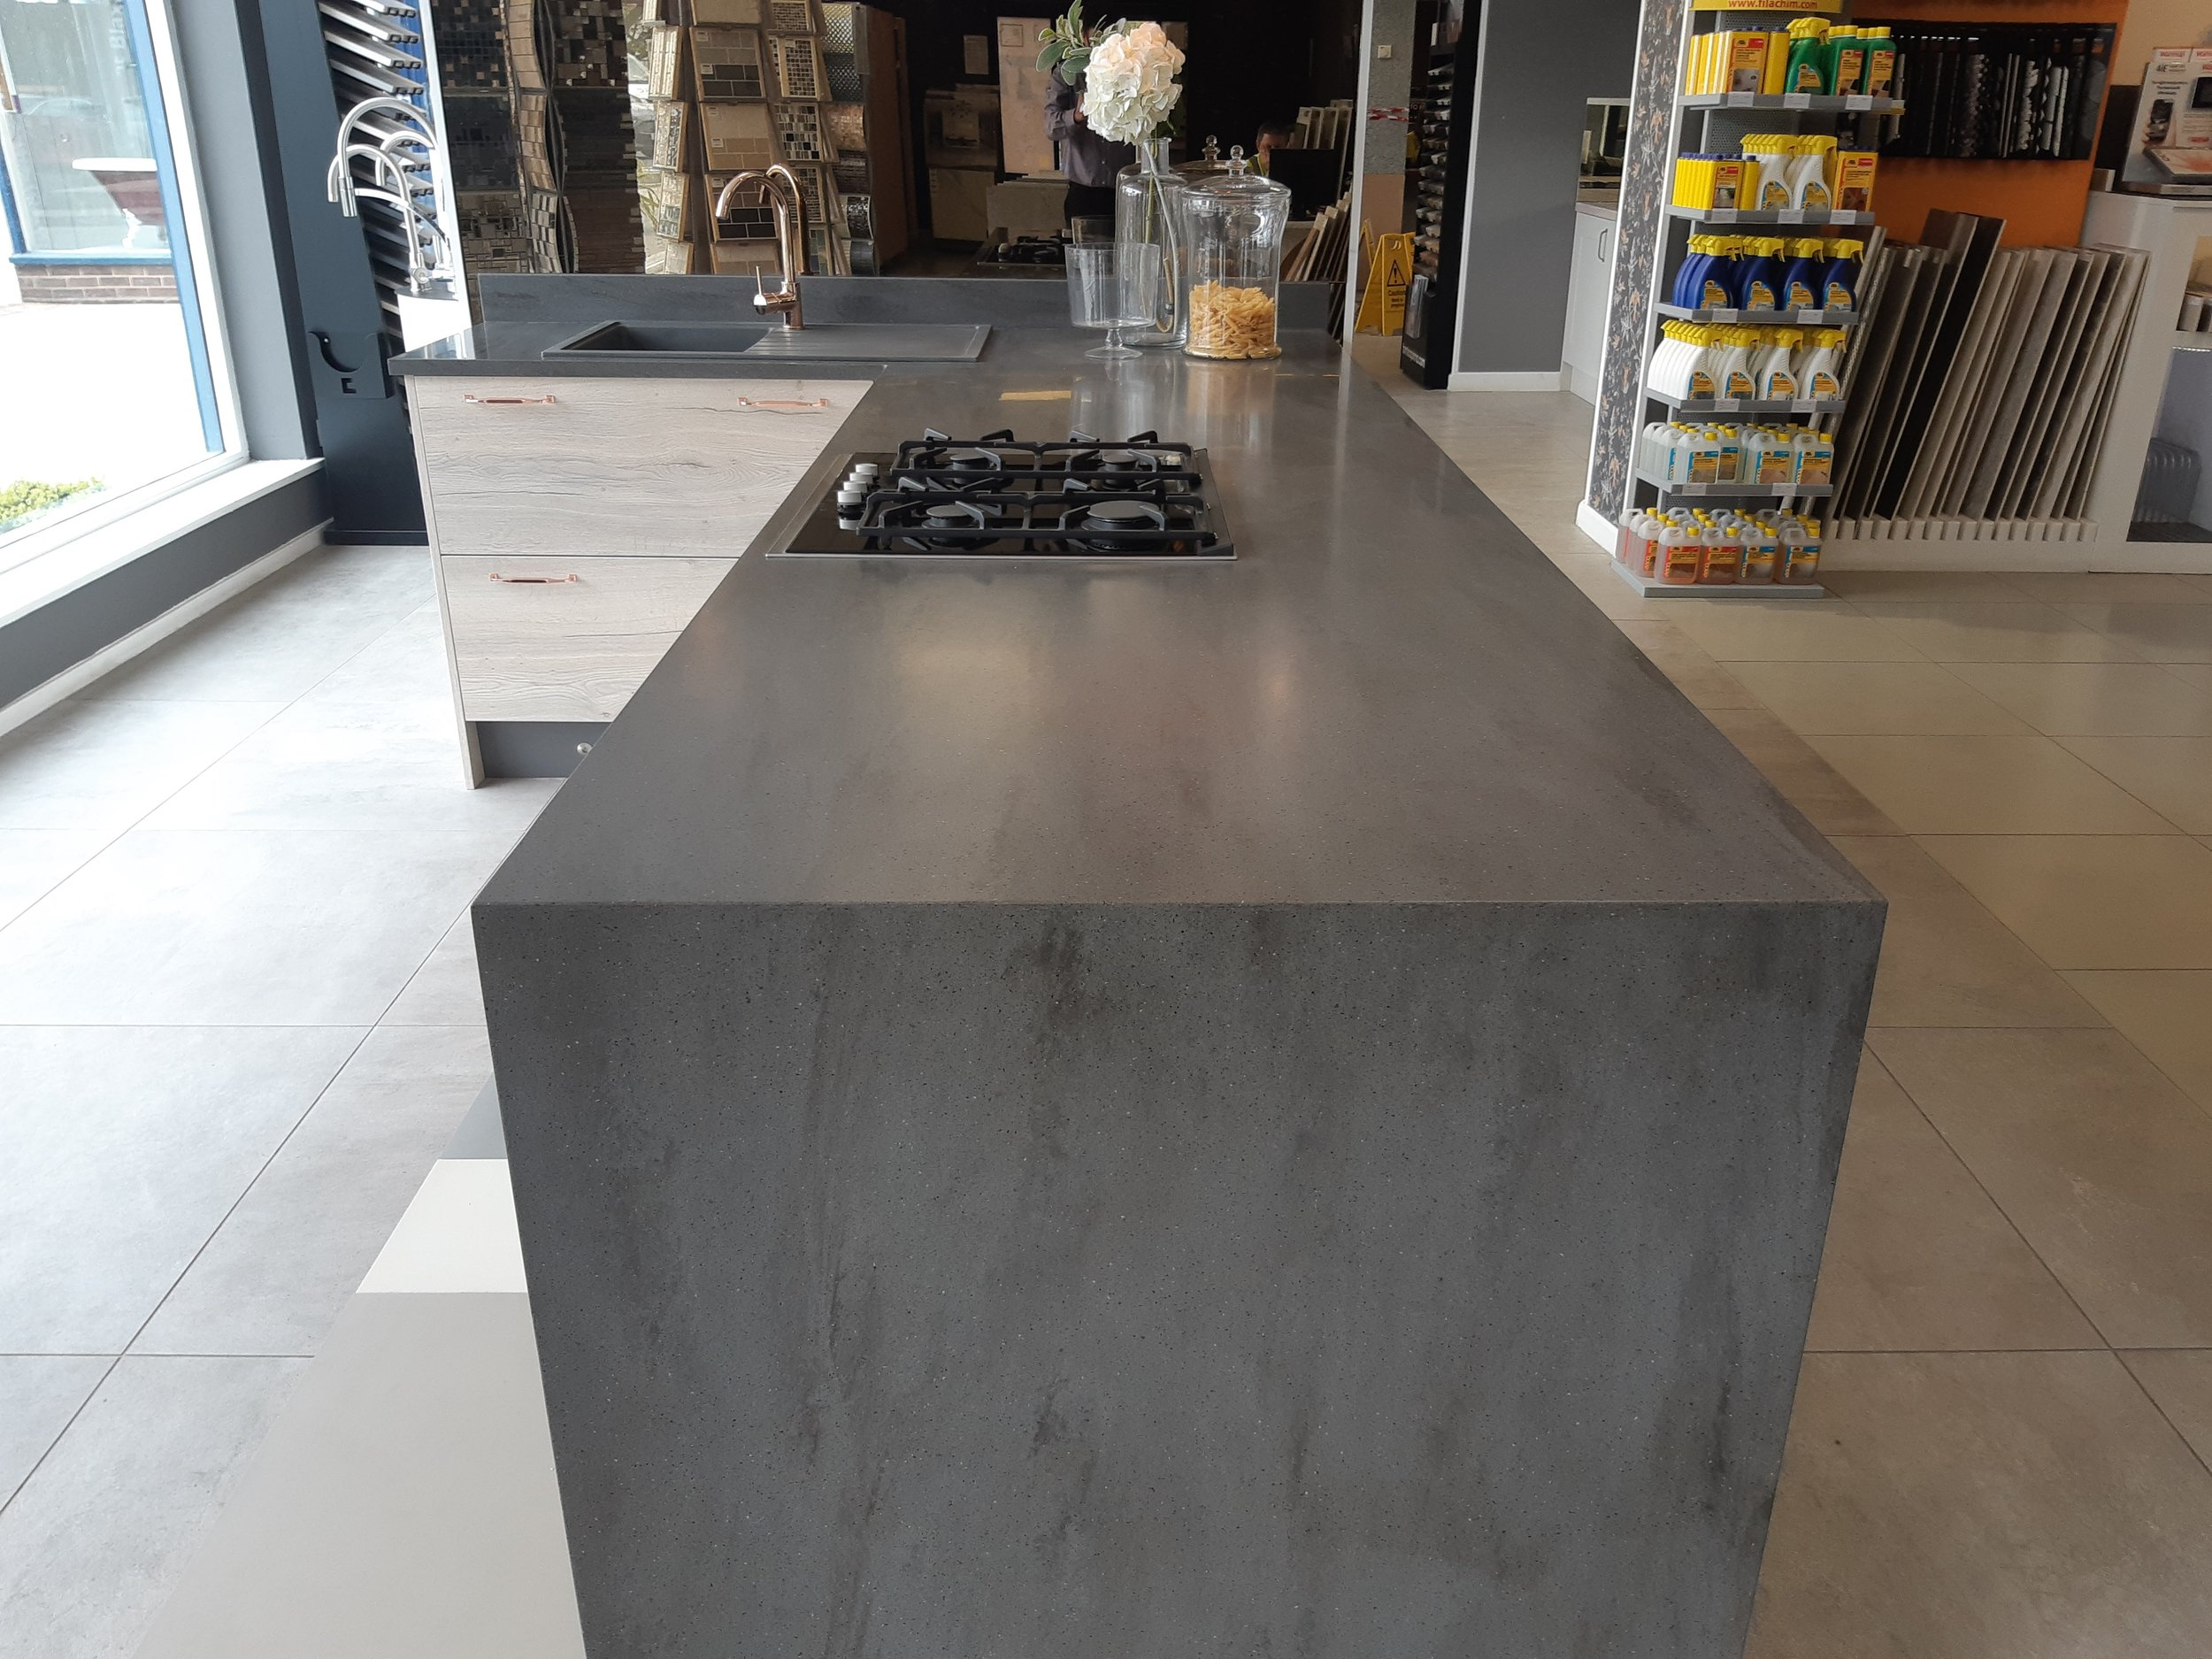 Hygienic - Tristone's non-porous acrylic surface has countless benefits; with its ability to join seamlessly it can fend off mildew, bacteria and other harmful germs and is stain resistant. As Tristone can be joined seamlessly it is the perfect worktop option for clinical environments.